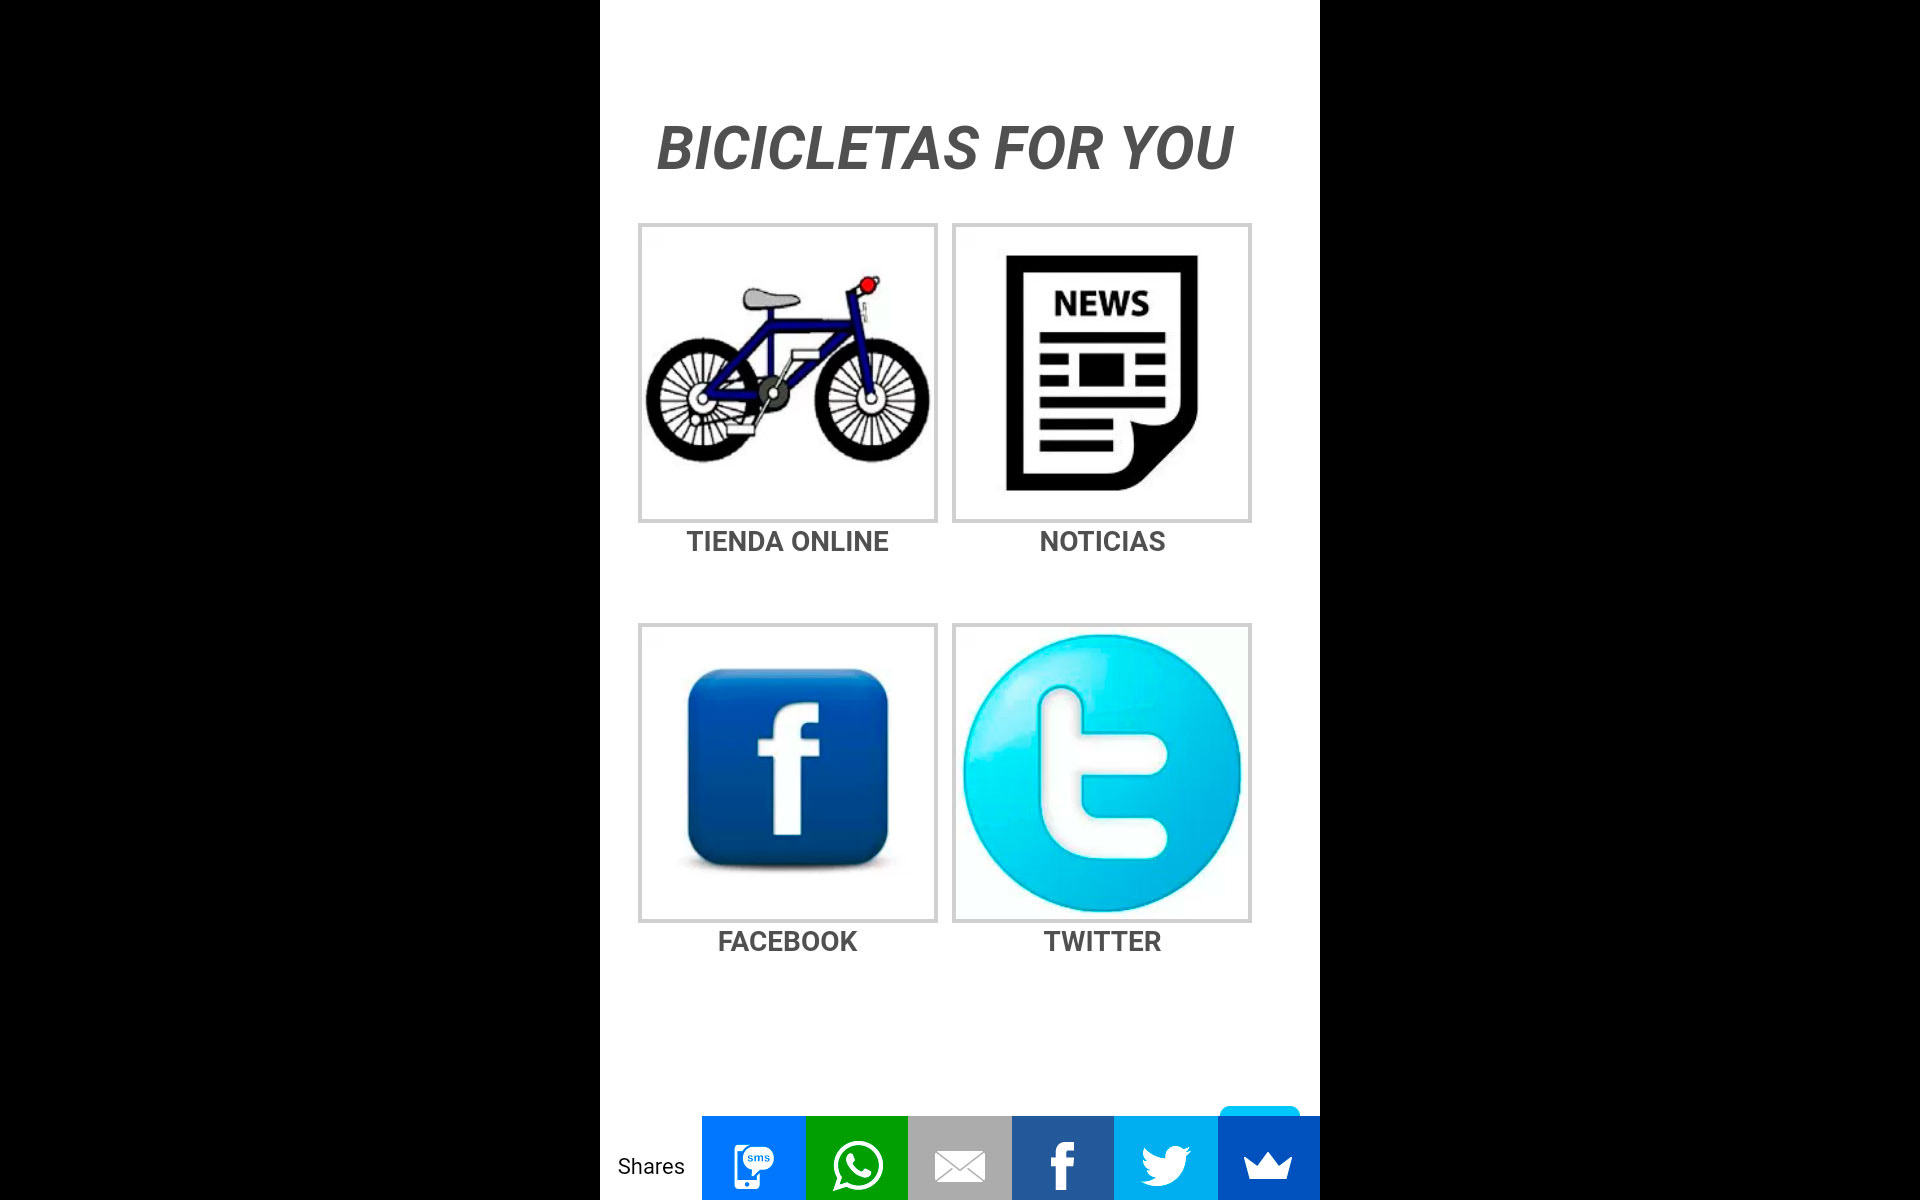 Bicicletas For You